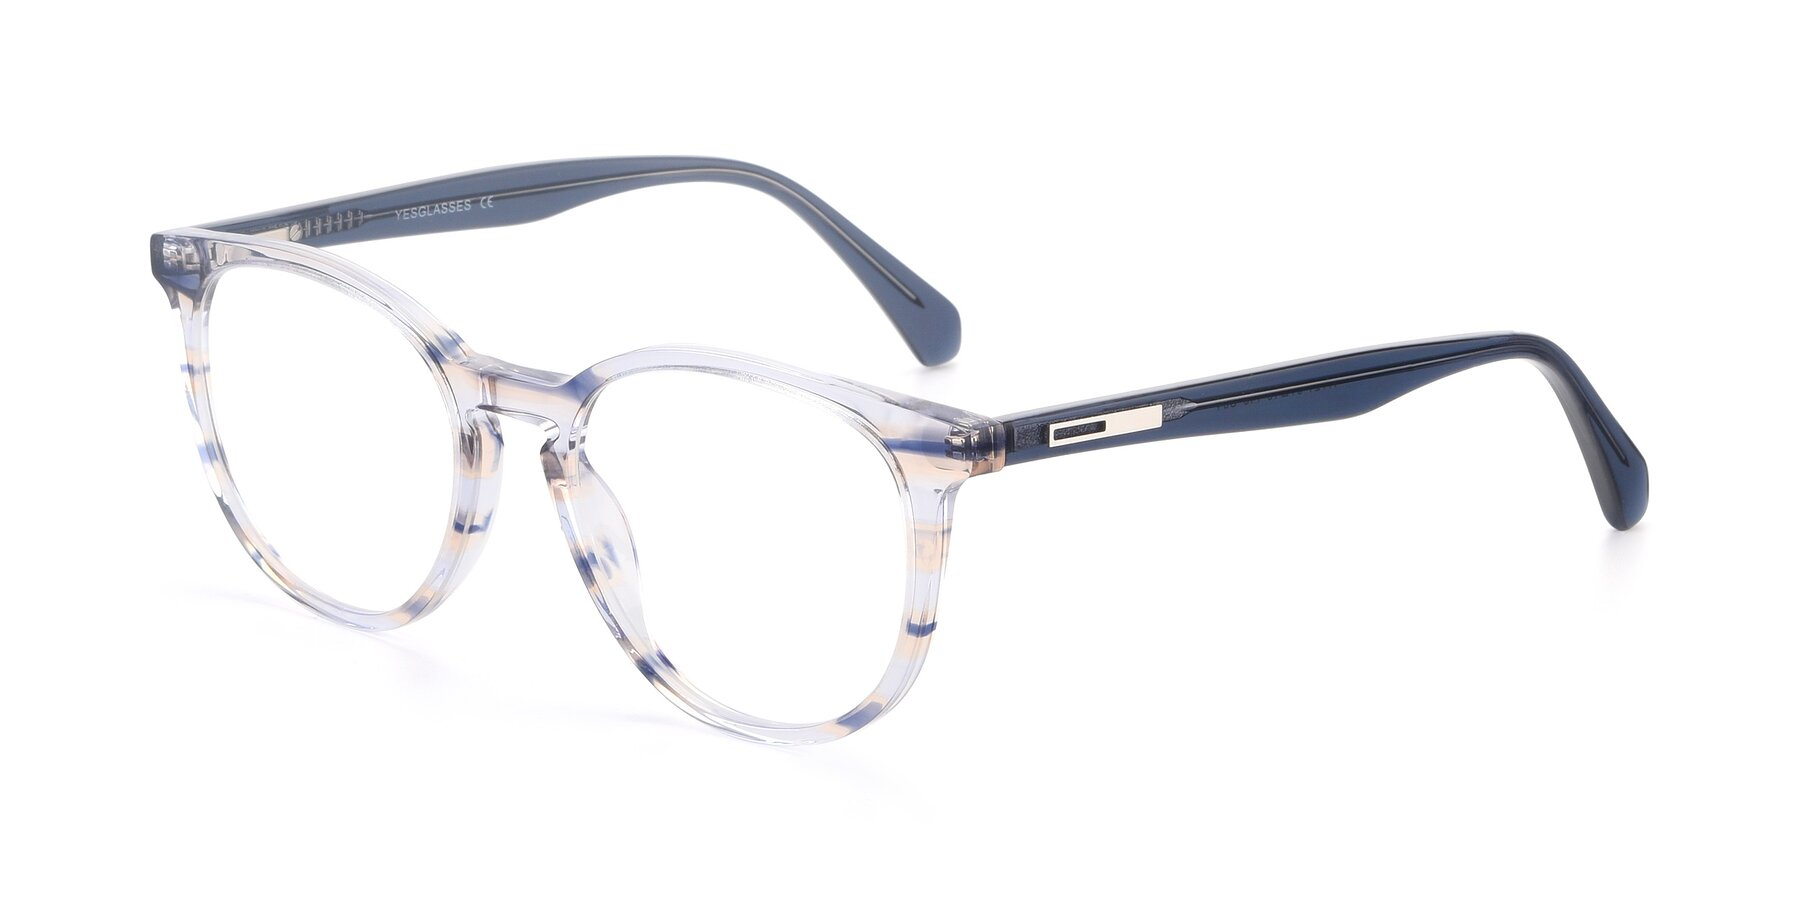 Angle of 17721 in Stripe Blue with Clear Blue Light Blocking Lenses